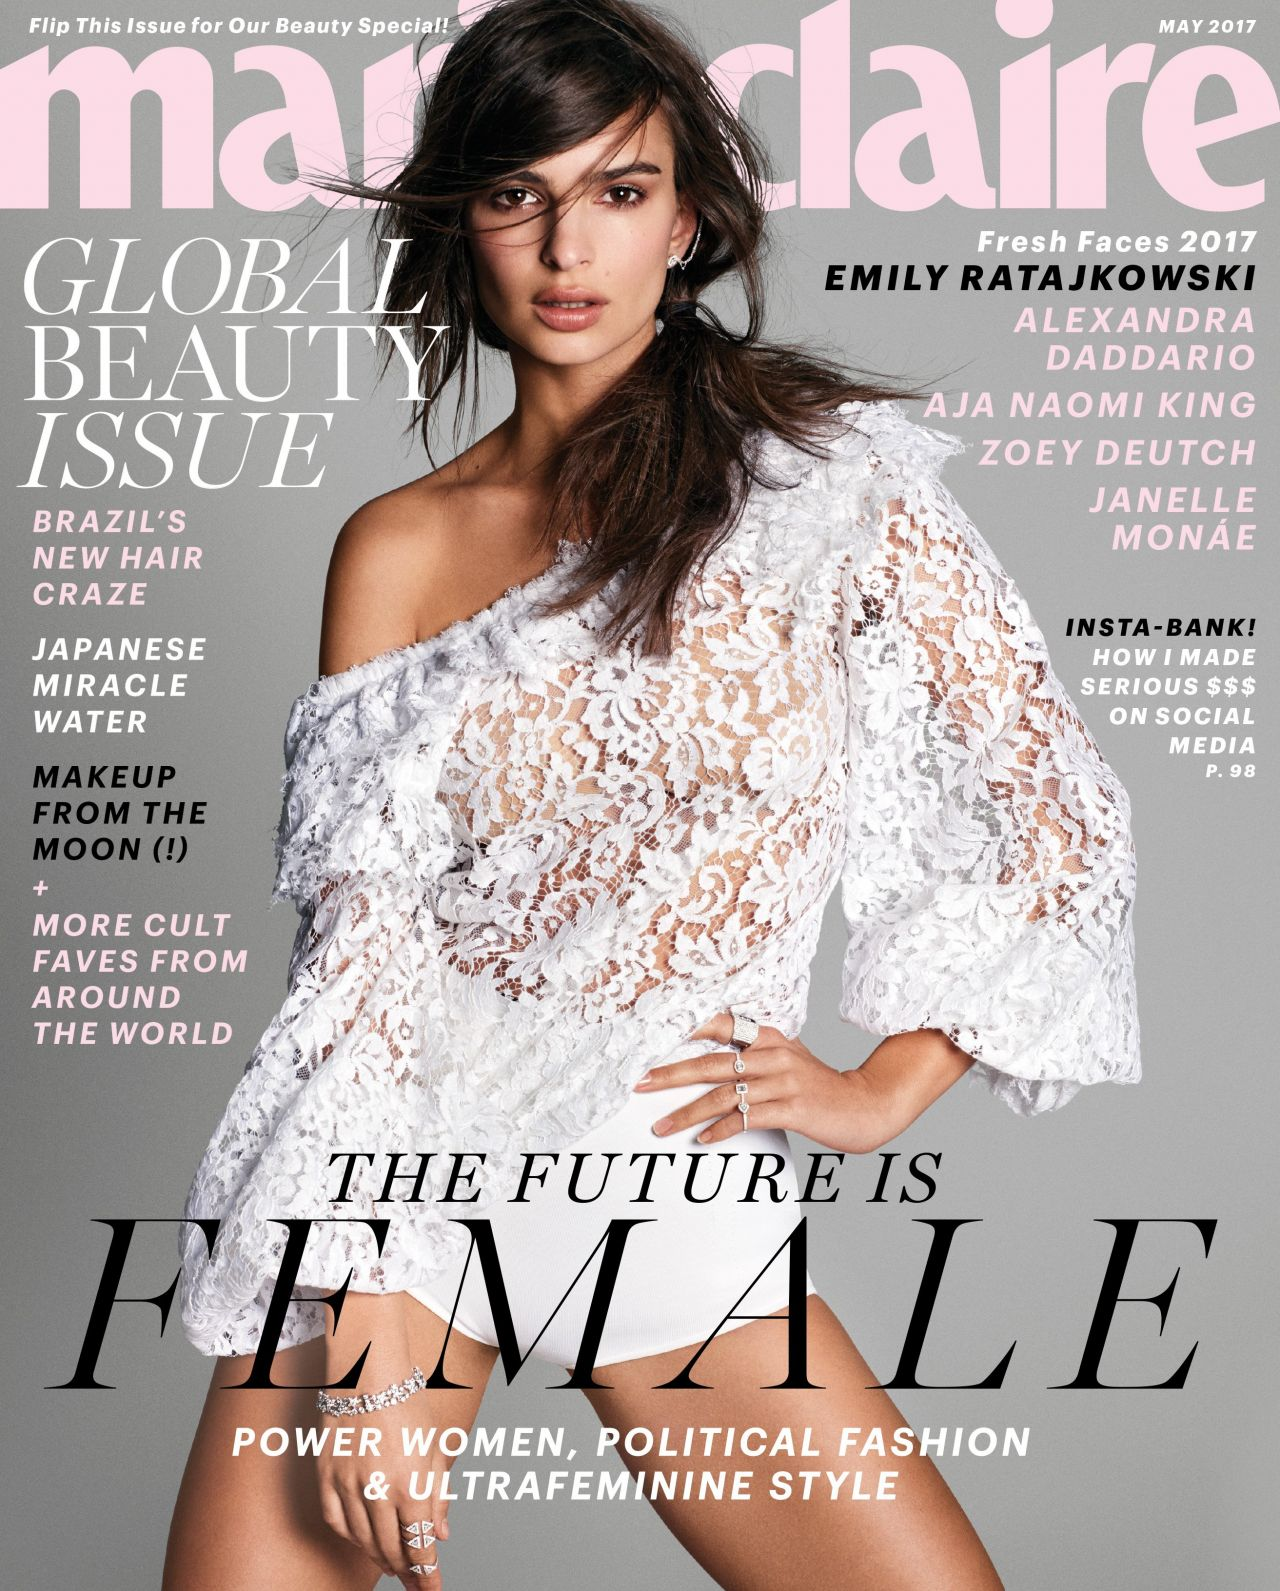 emily ratajkowski marie claire magazine may 2017 cover and photo. Black Bedroom Furniture Sets. Home Design Ideas